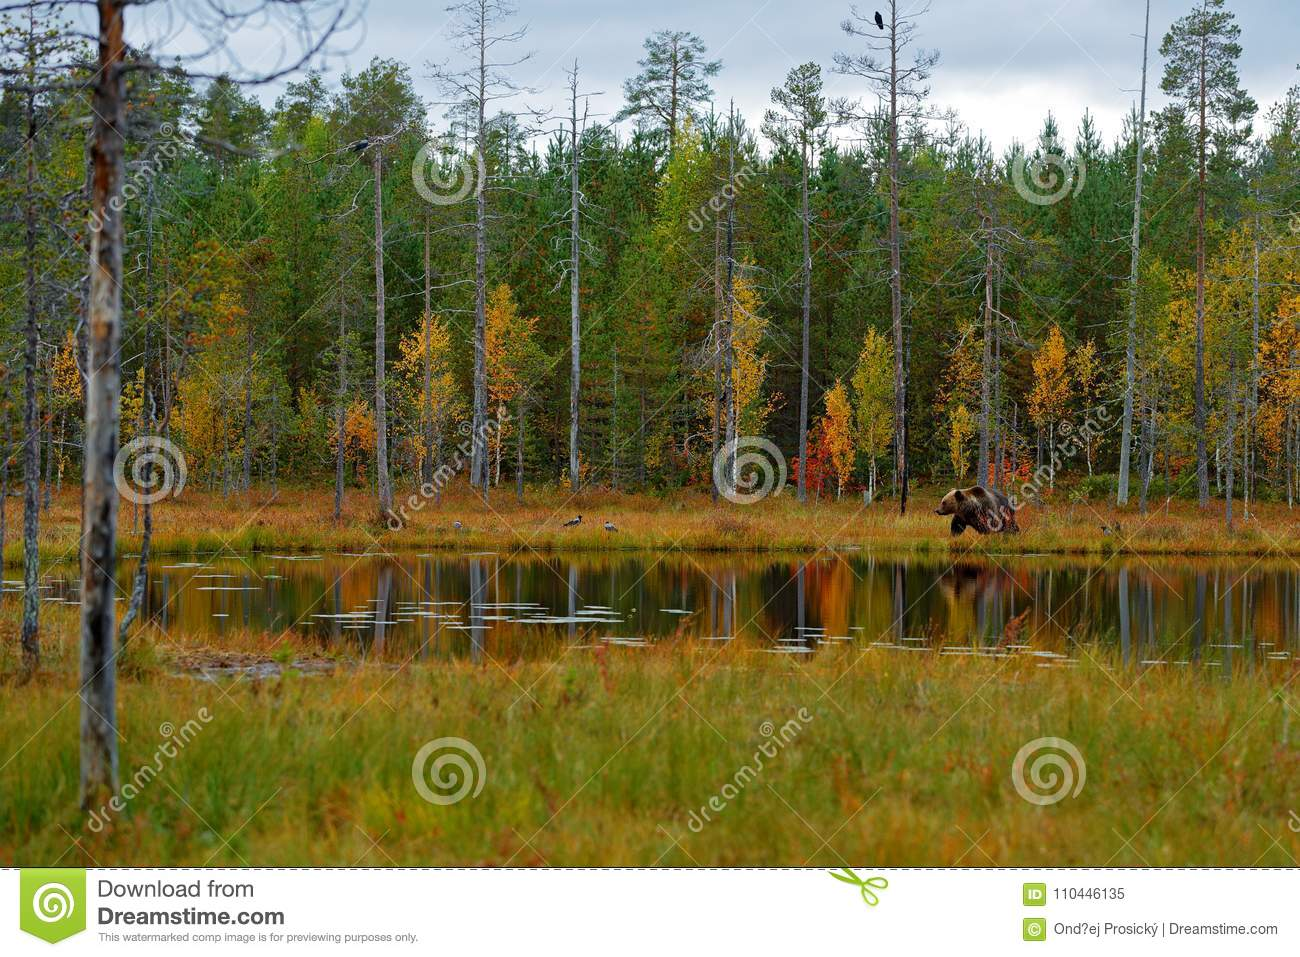 Beautiful brown bear walking around lake with fall colours. Dangerous animal in nature wood, meadow habitat. Wildlife habitat from